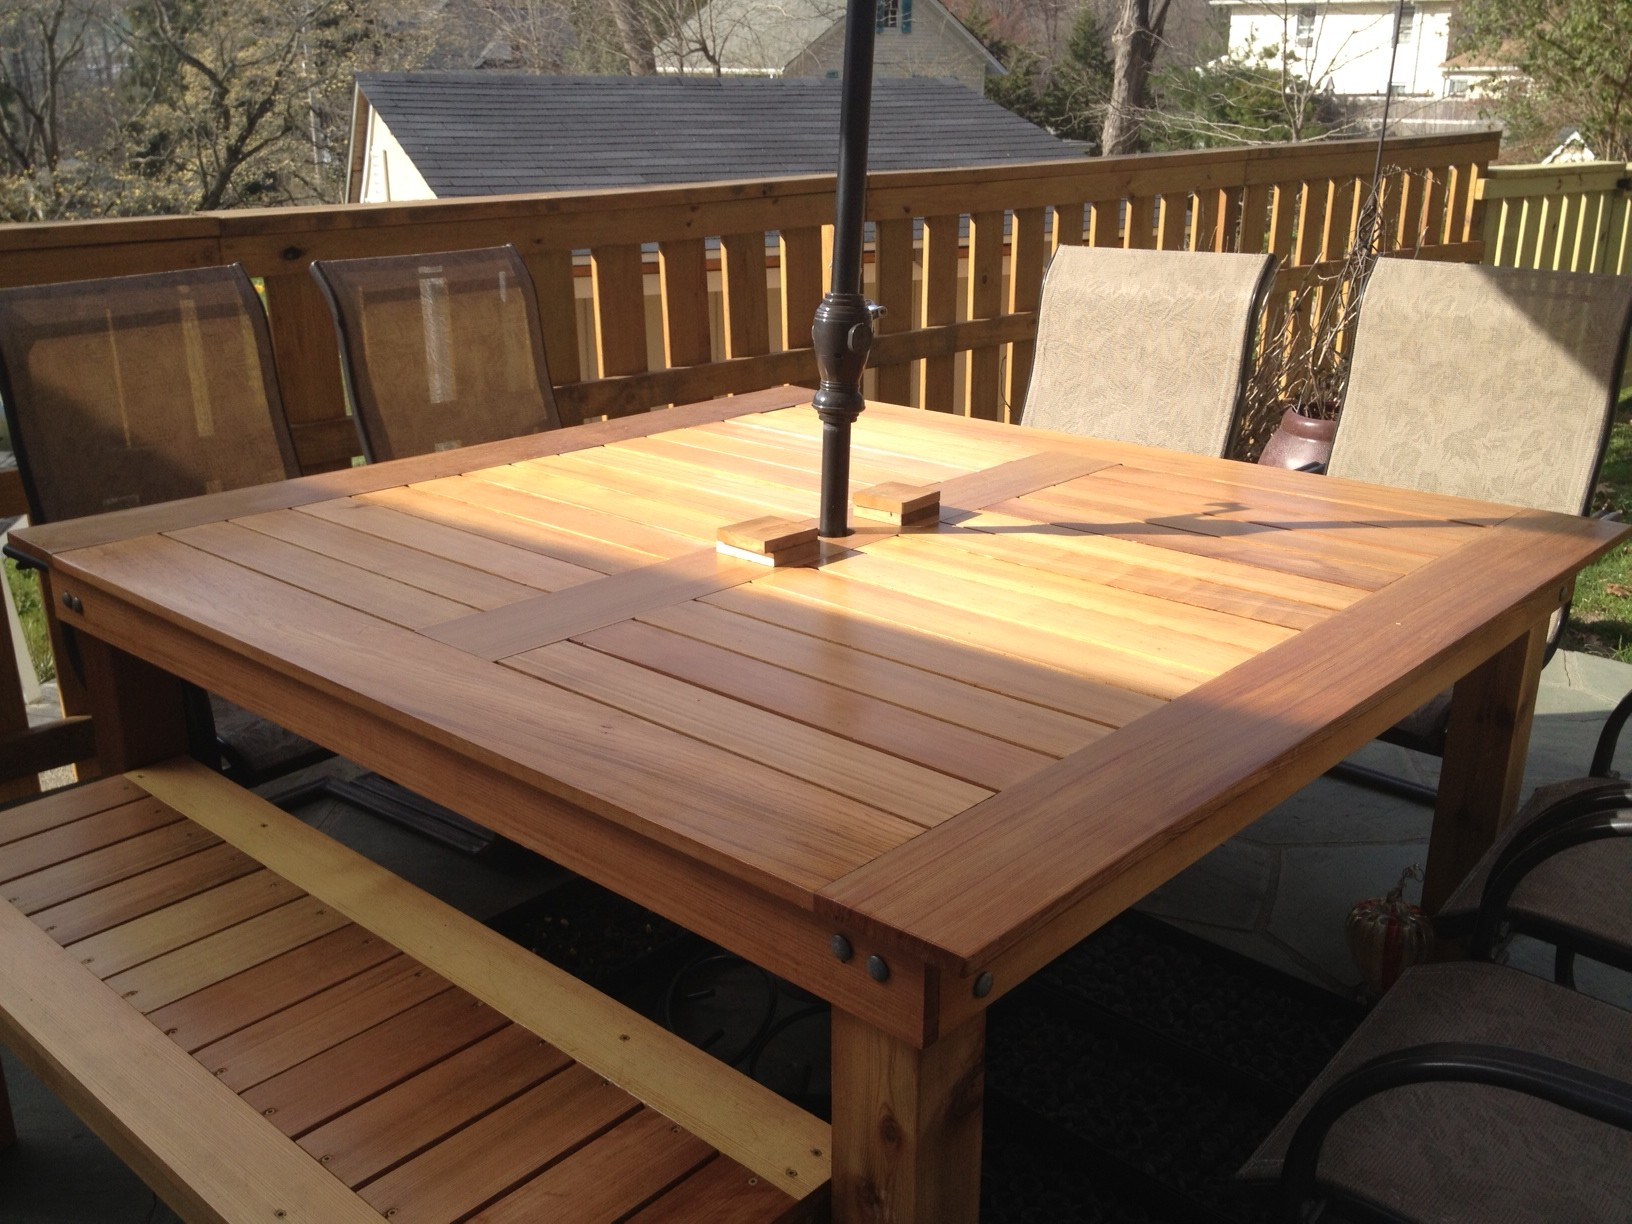 Diy Round Dining Table Plans Ana White Simple Square Cedar Outdoor Dining Table Diy